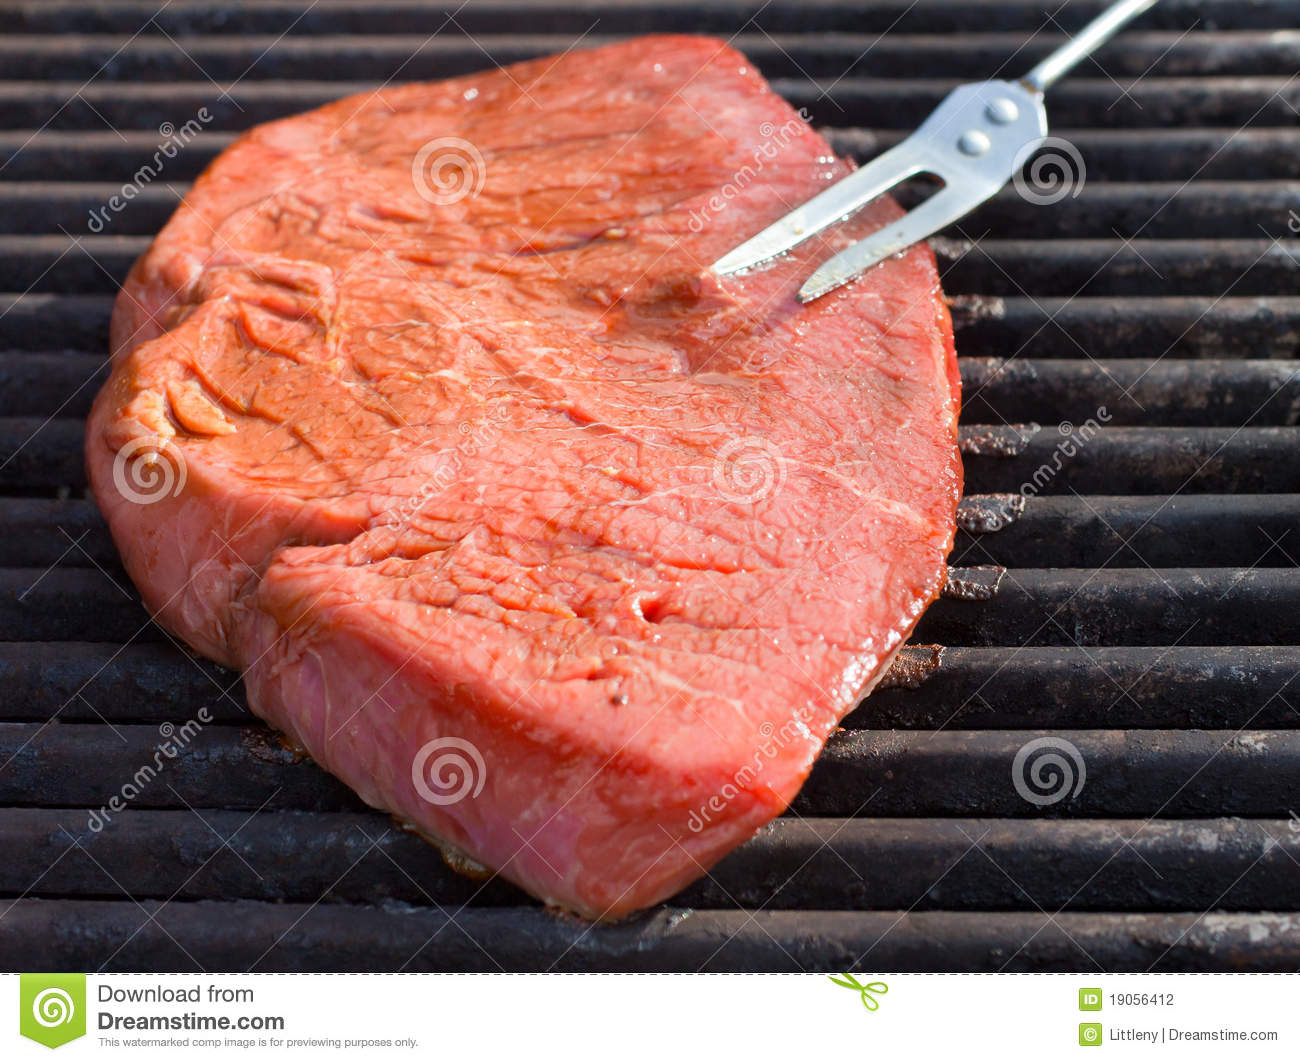 how to cook steak on gas grill